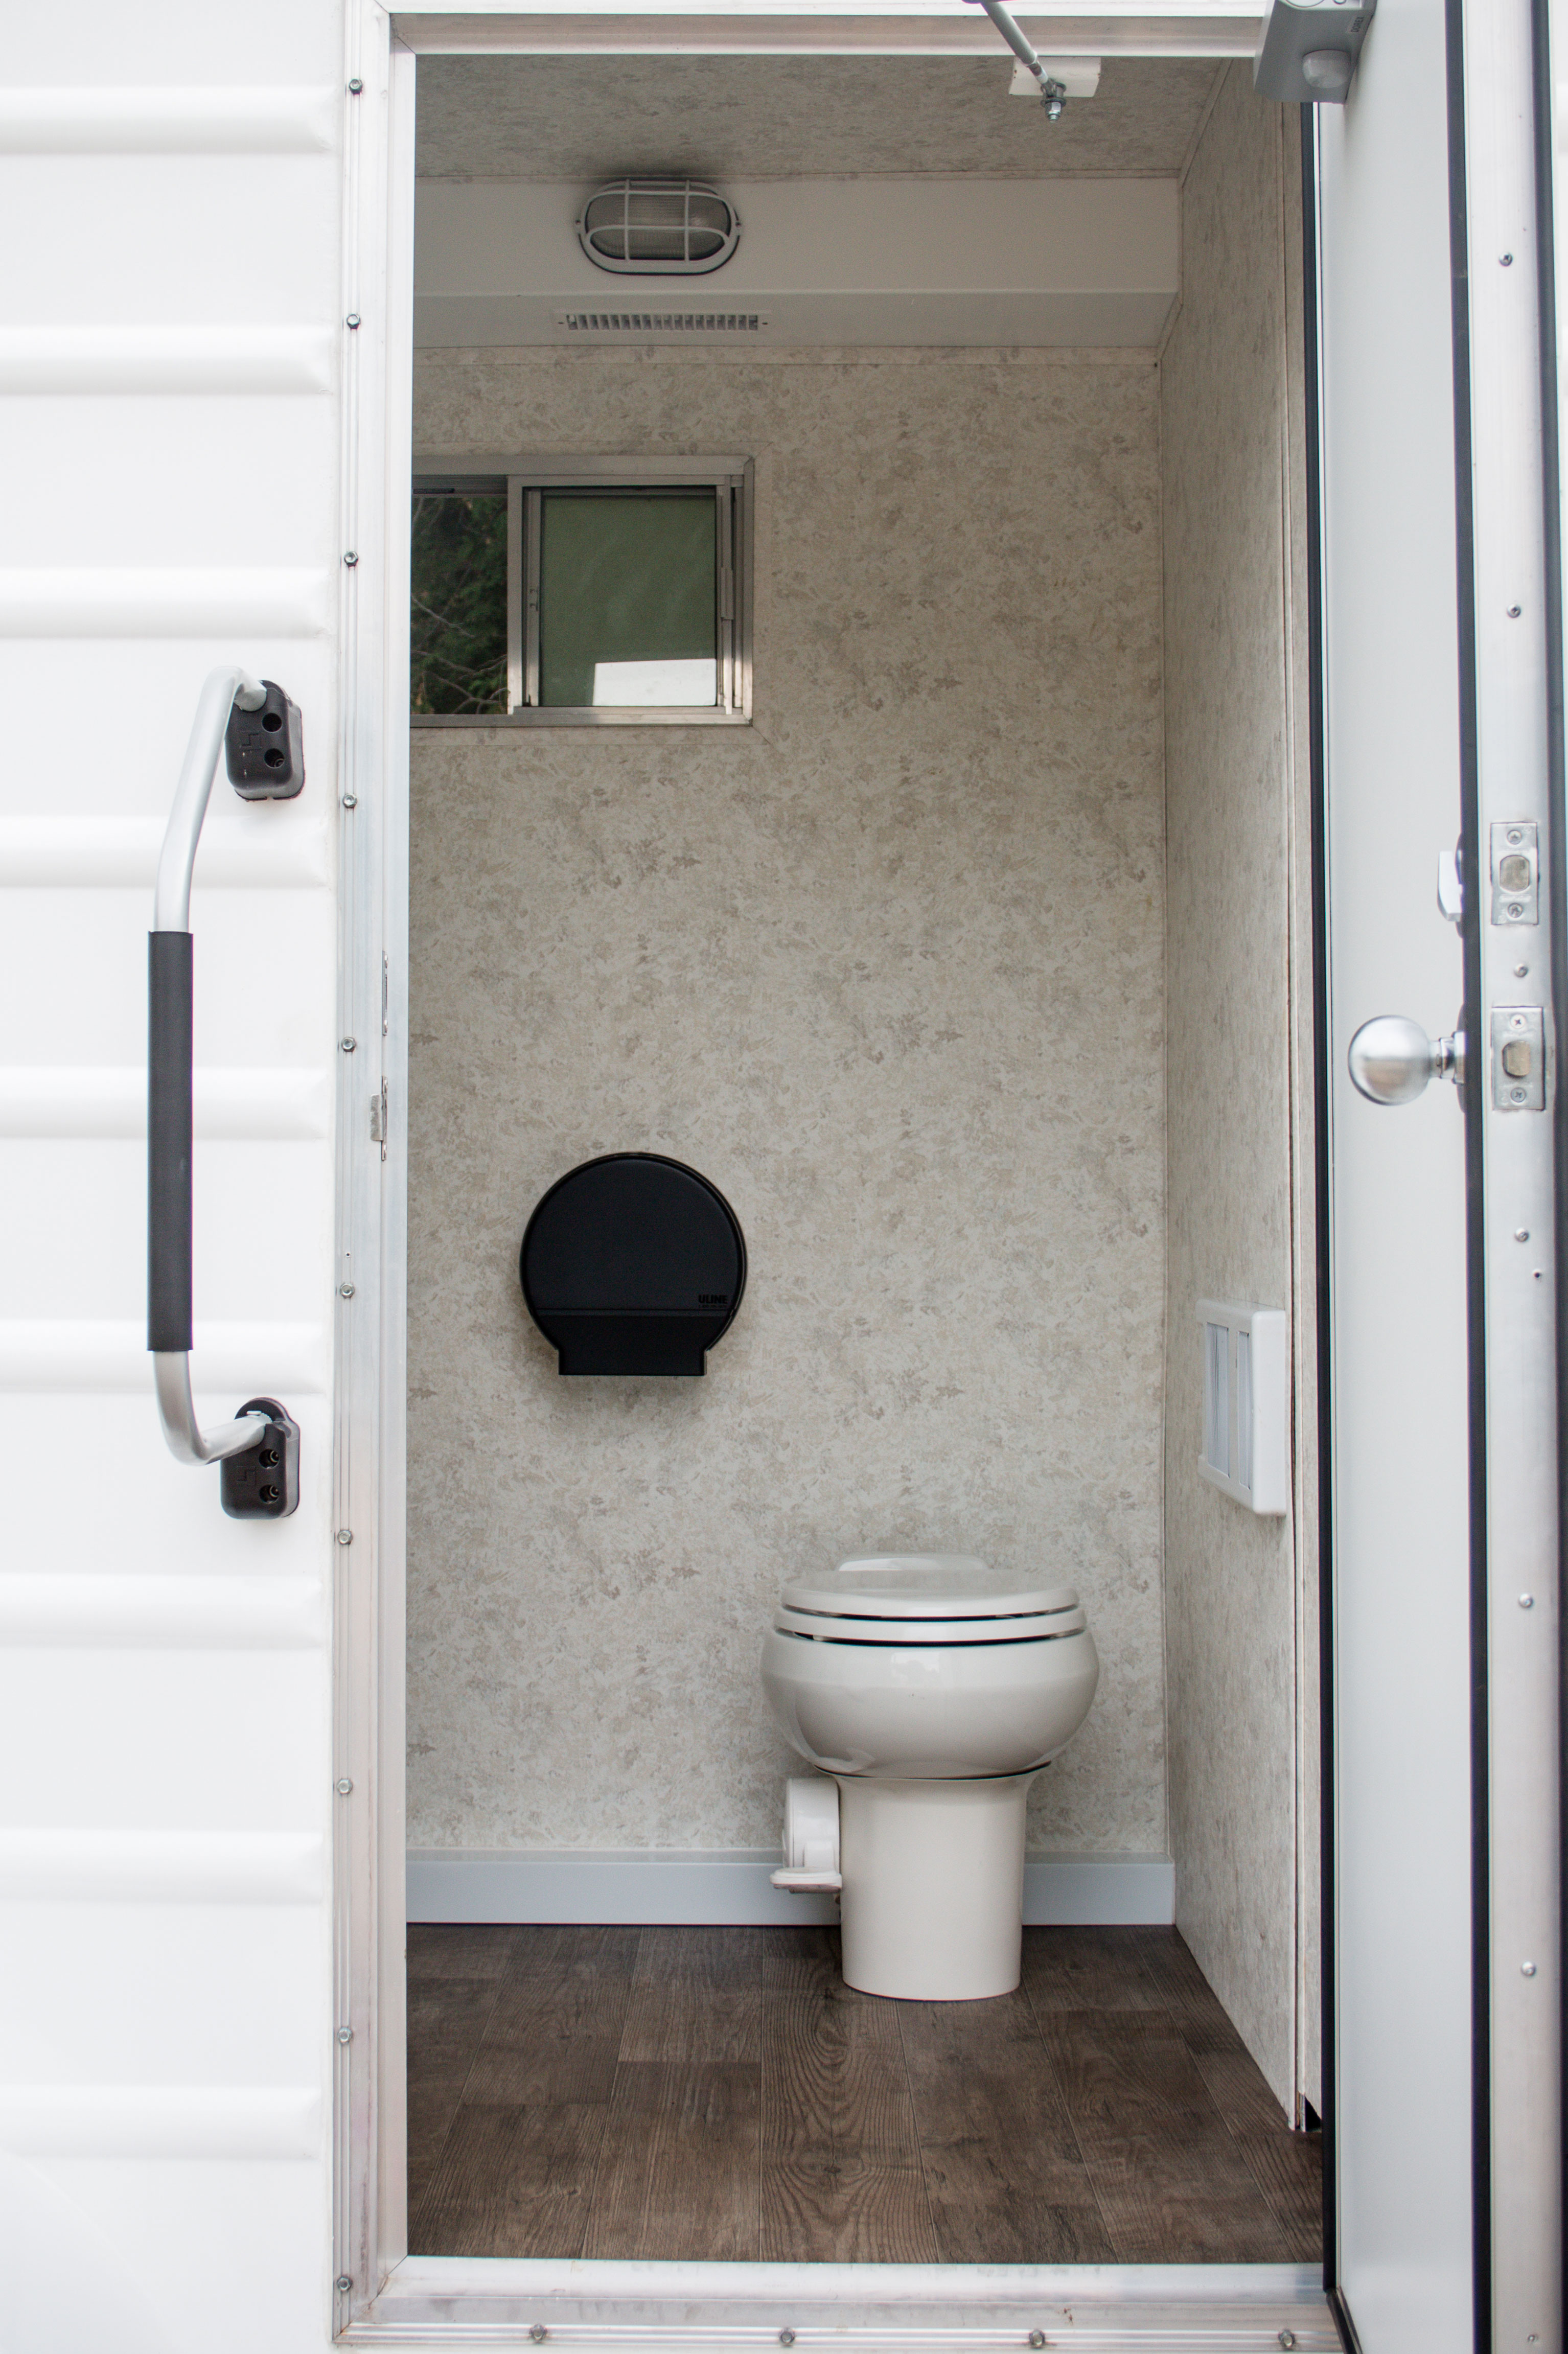 sss bathroom your facilites s trailer suburban trailers canton foot temporary portable ct service sanitation special occasion occasions luxurious for restrooms luxury